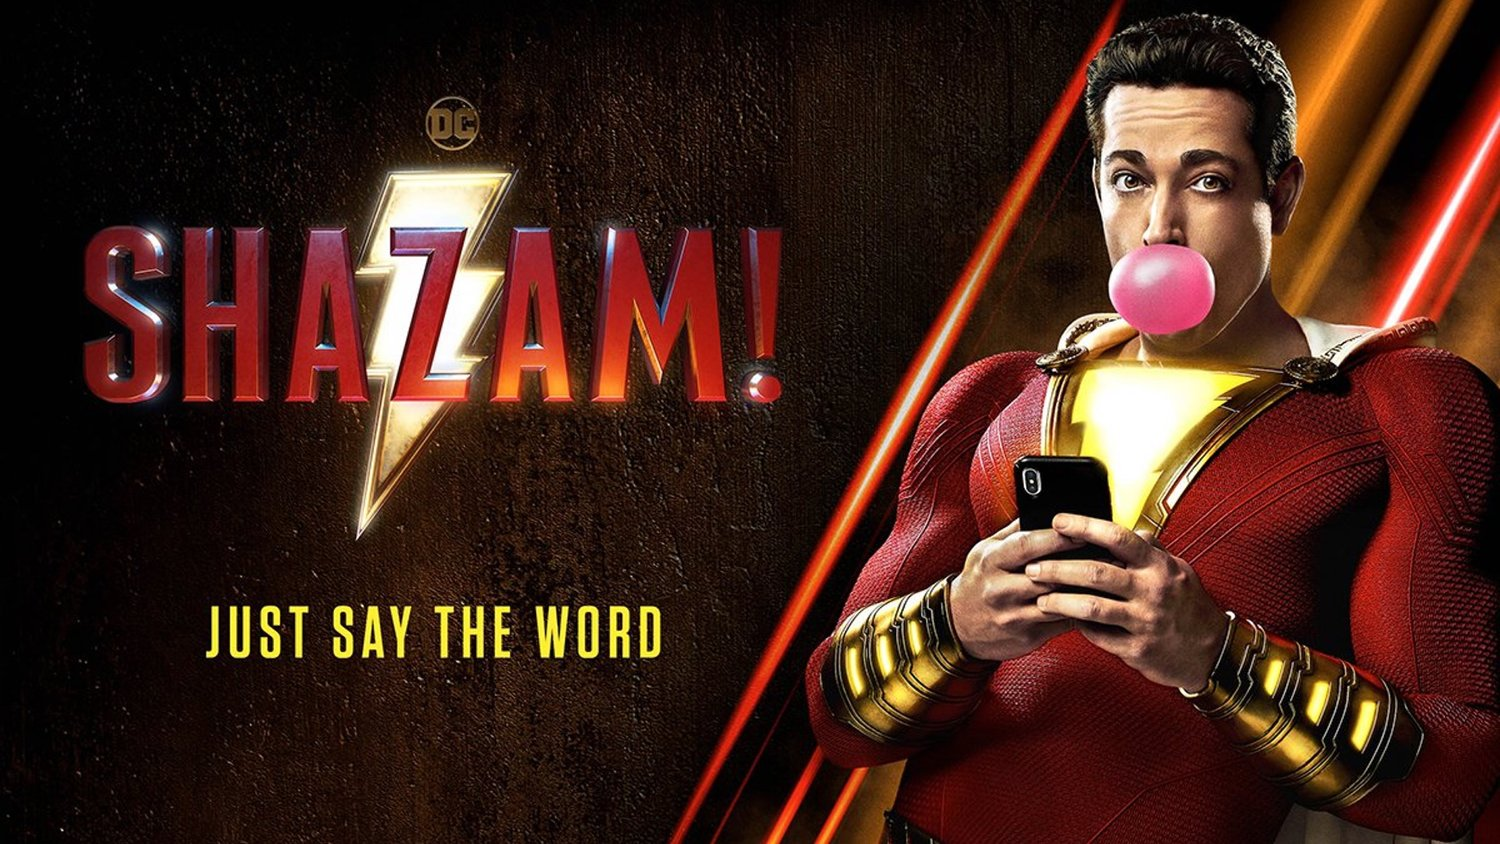 Shazam 2 Adds A New Title And Sinbad, Yes, That Sinbad